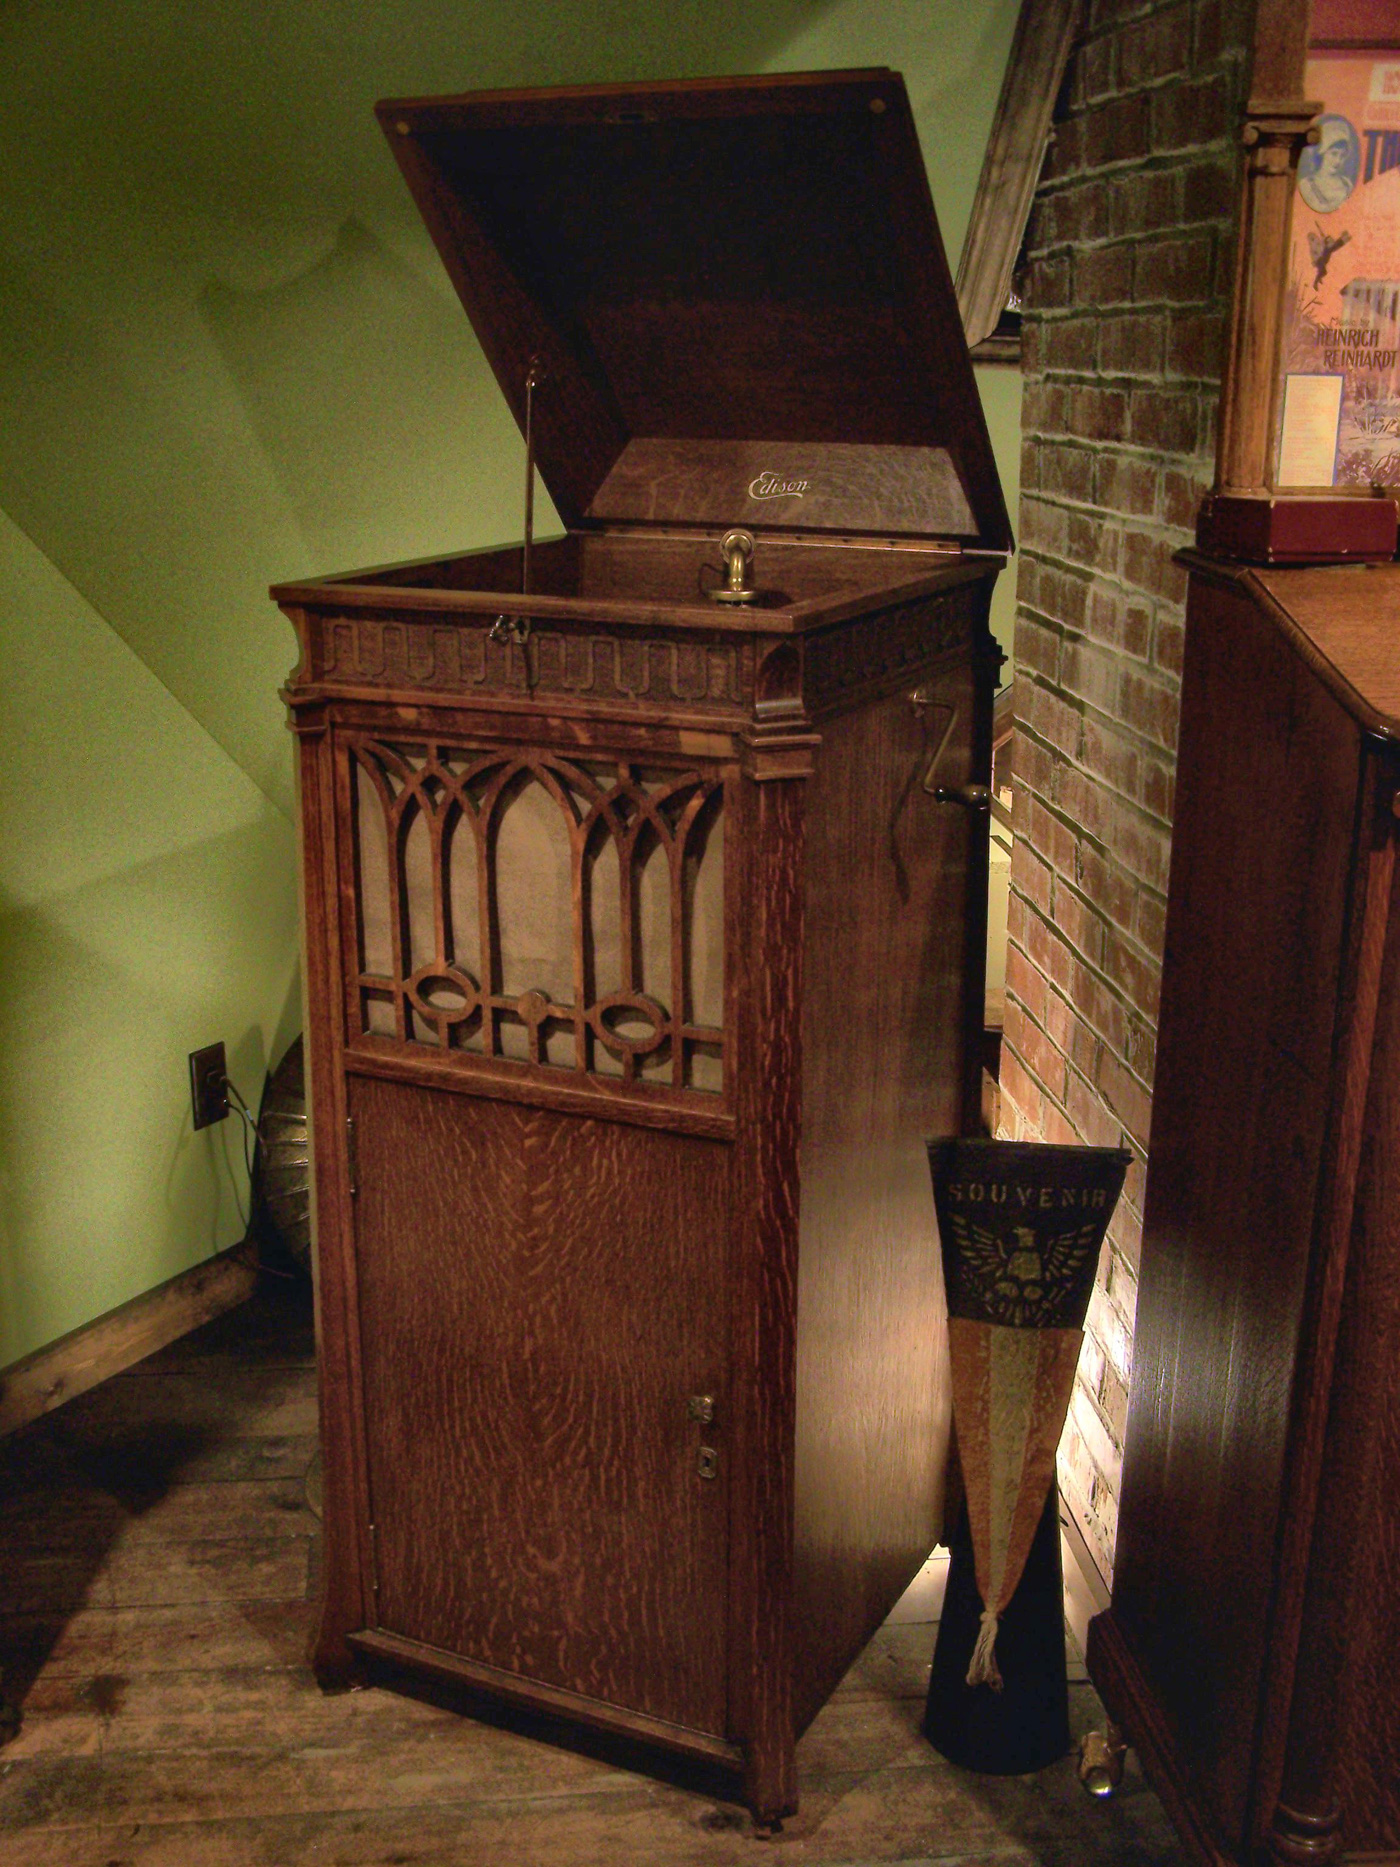 How Much Is An Antique Record Player Cabinet Worth Furniture - Antique  Record Player Cabinet Value - How Much Is An Antique Record Player Cabinet Worth Antique Furniture